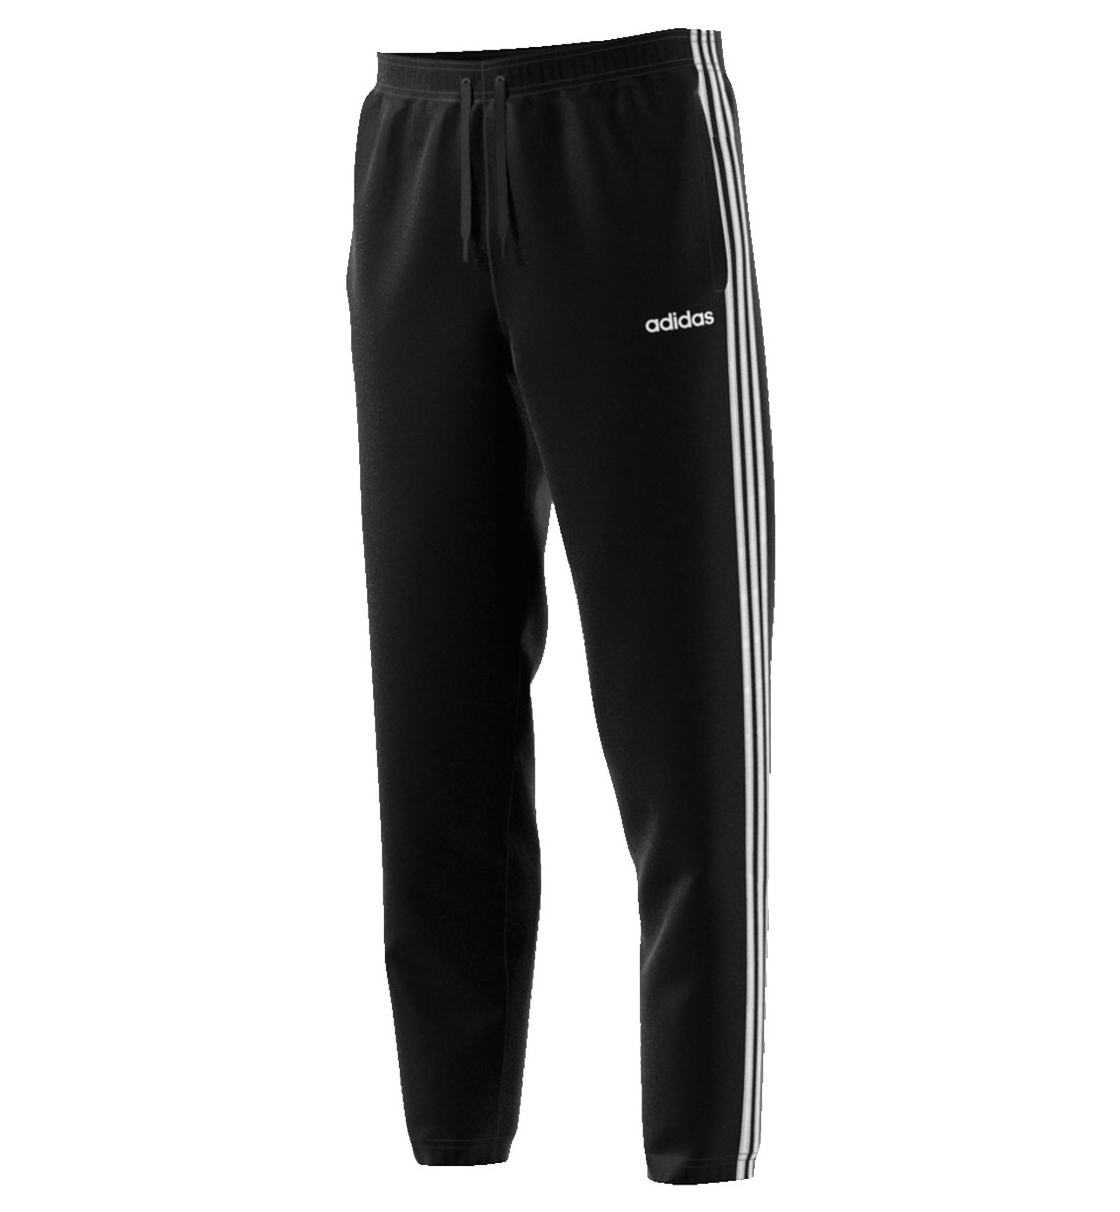 Adidas Fw19 Essentials 3 Stripes Tapered Pant French Terry Open Hem